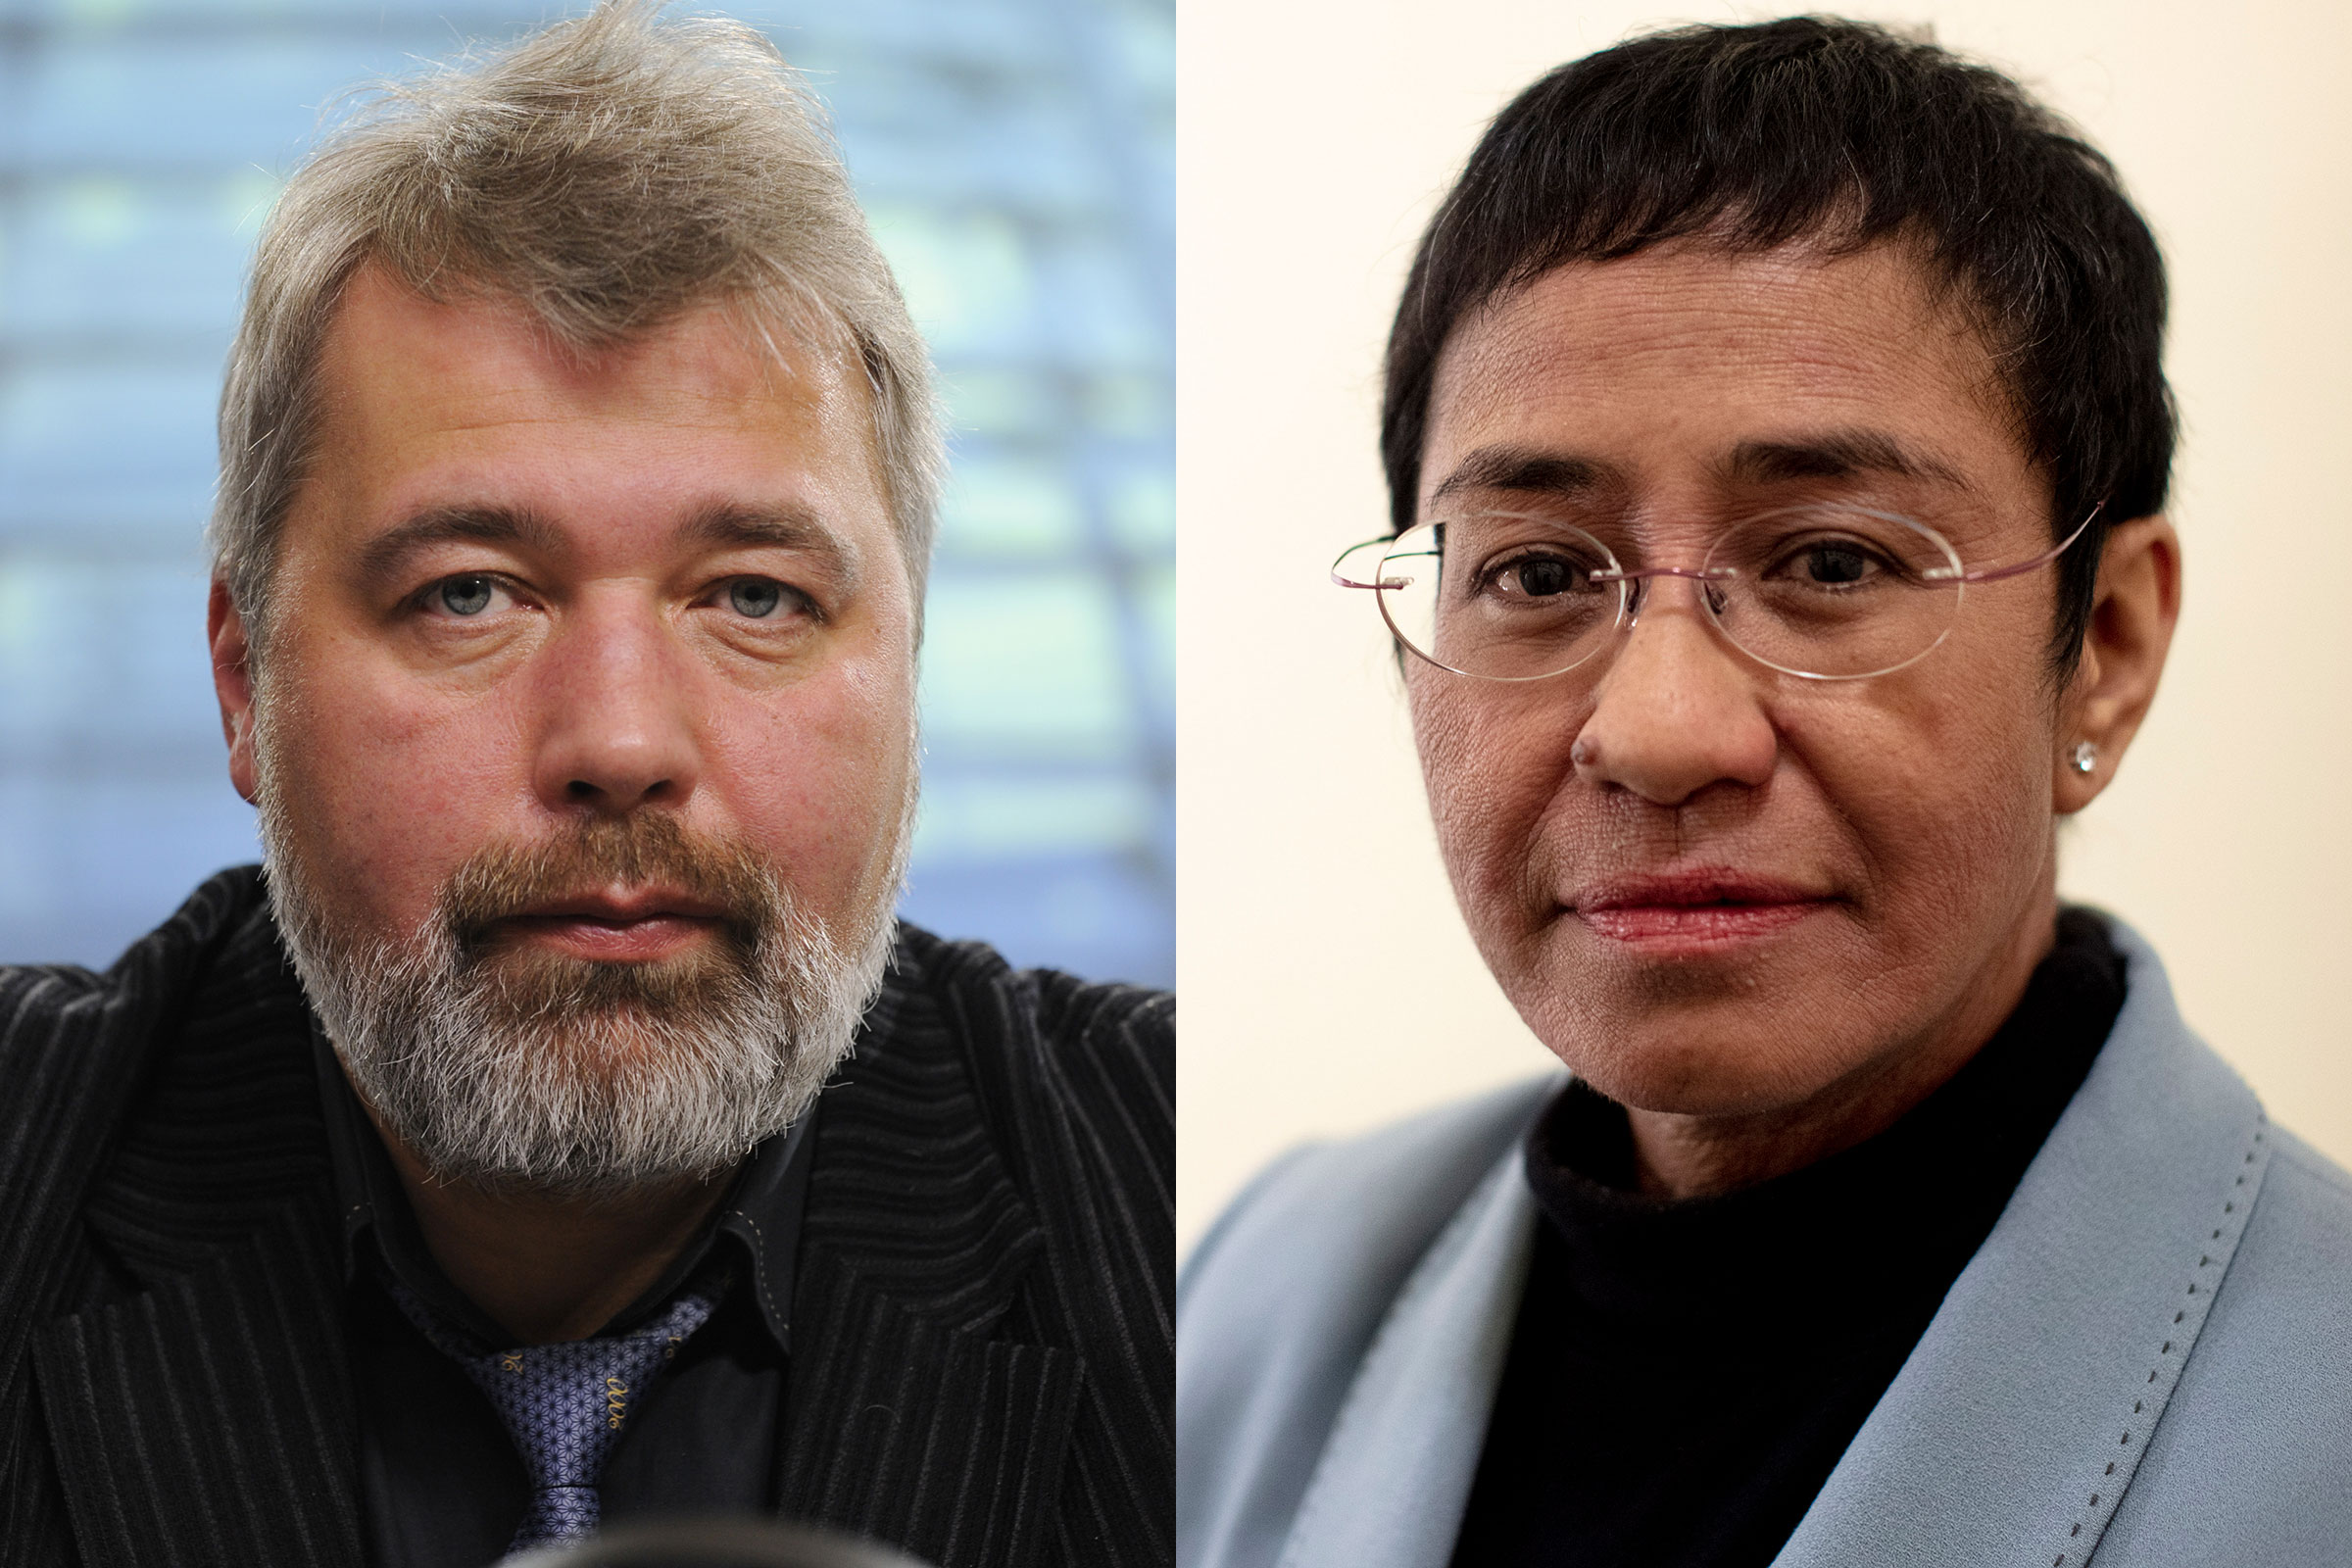 The 2021 Nobel Peace Prize was awarded to journalists Maria Ressa and Dmitry Muratov for the fight for freedom of expression in the Philippines and in Russia.